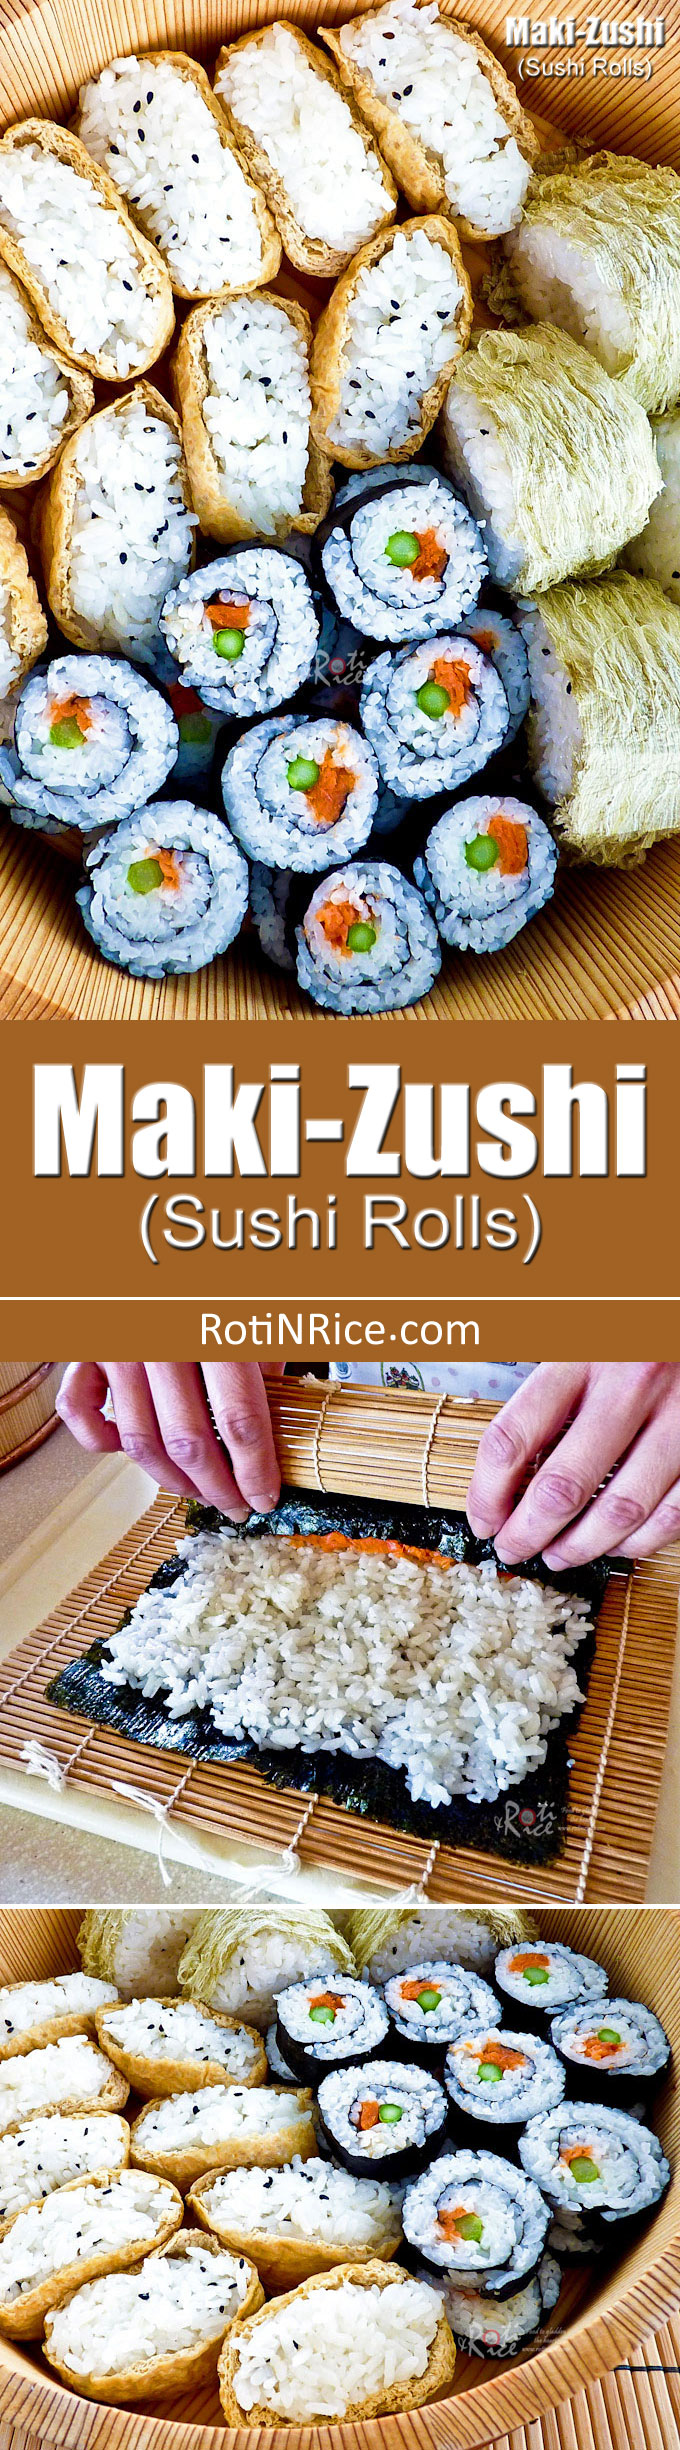 Simple and tasty homemade rolled sushi or Maki-zushi filled with Nova lox and tender asparagus. Full instructions with step-by-step pictures. | RotiNRice.com